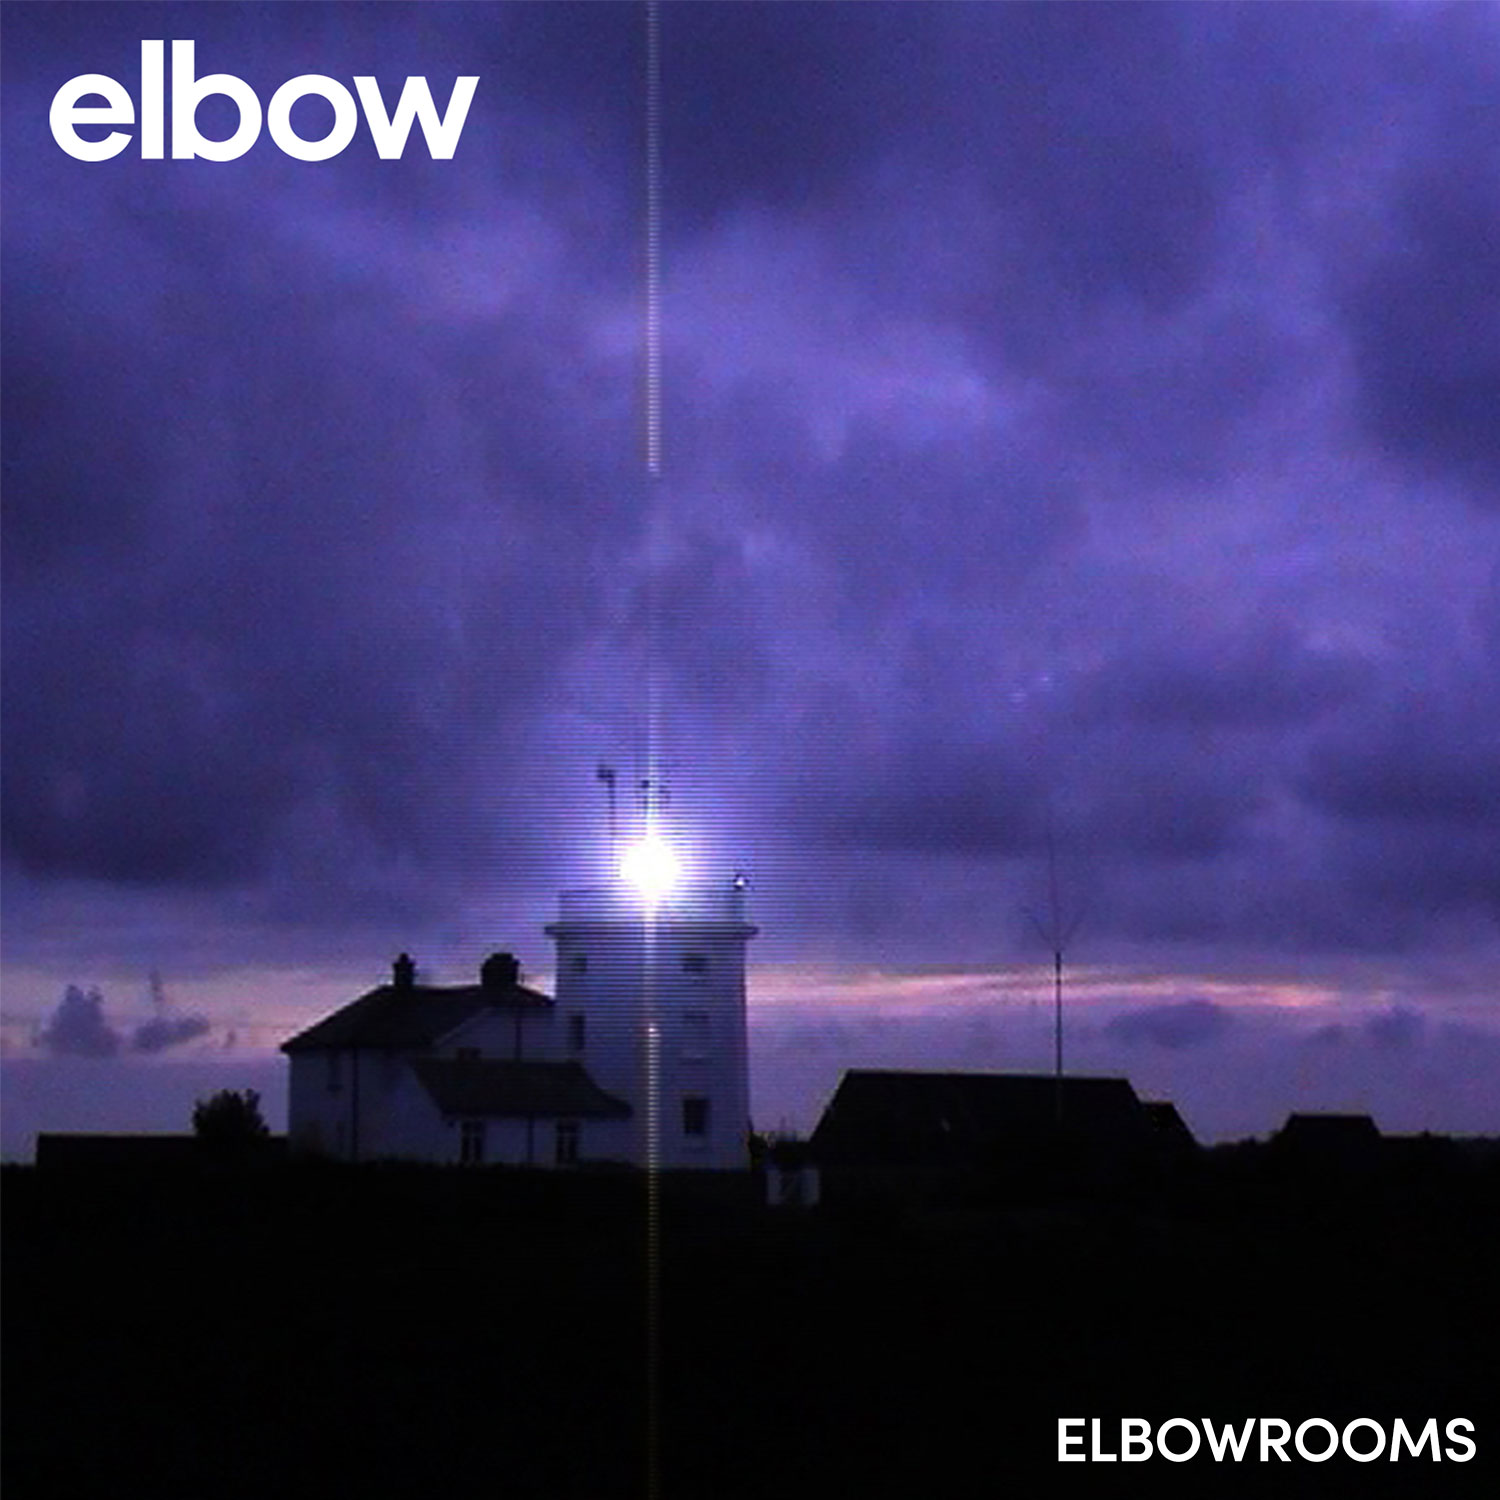 ELBOW ROOMS